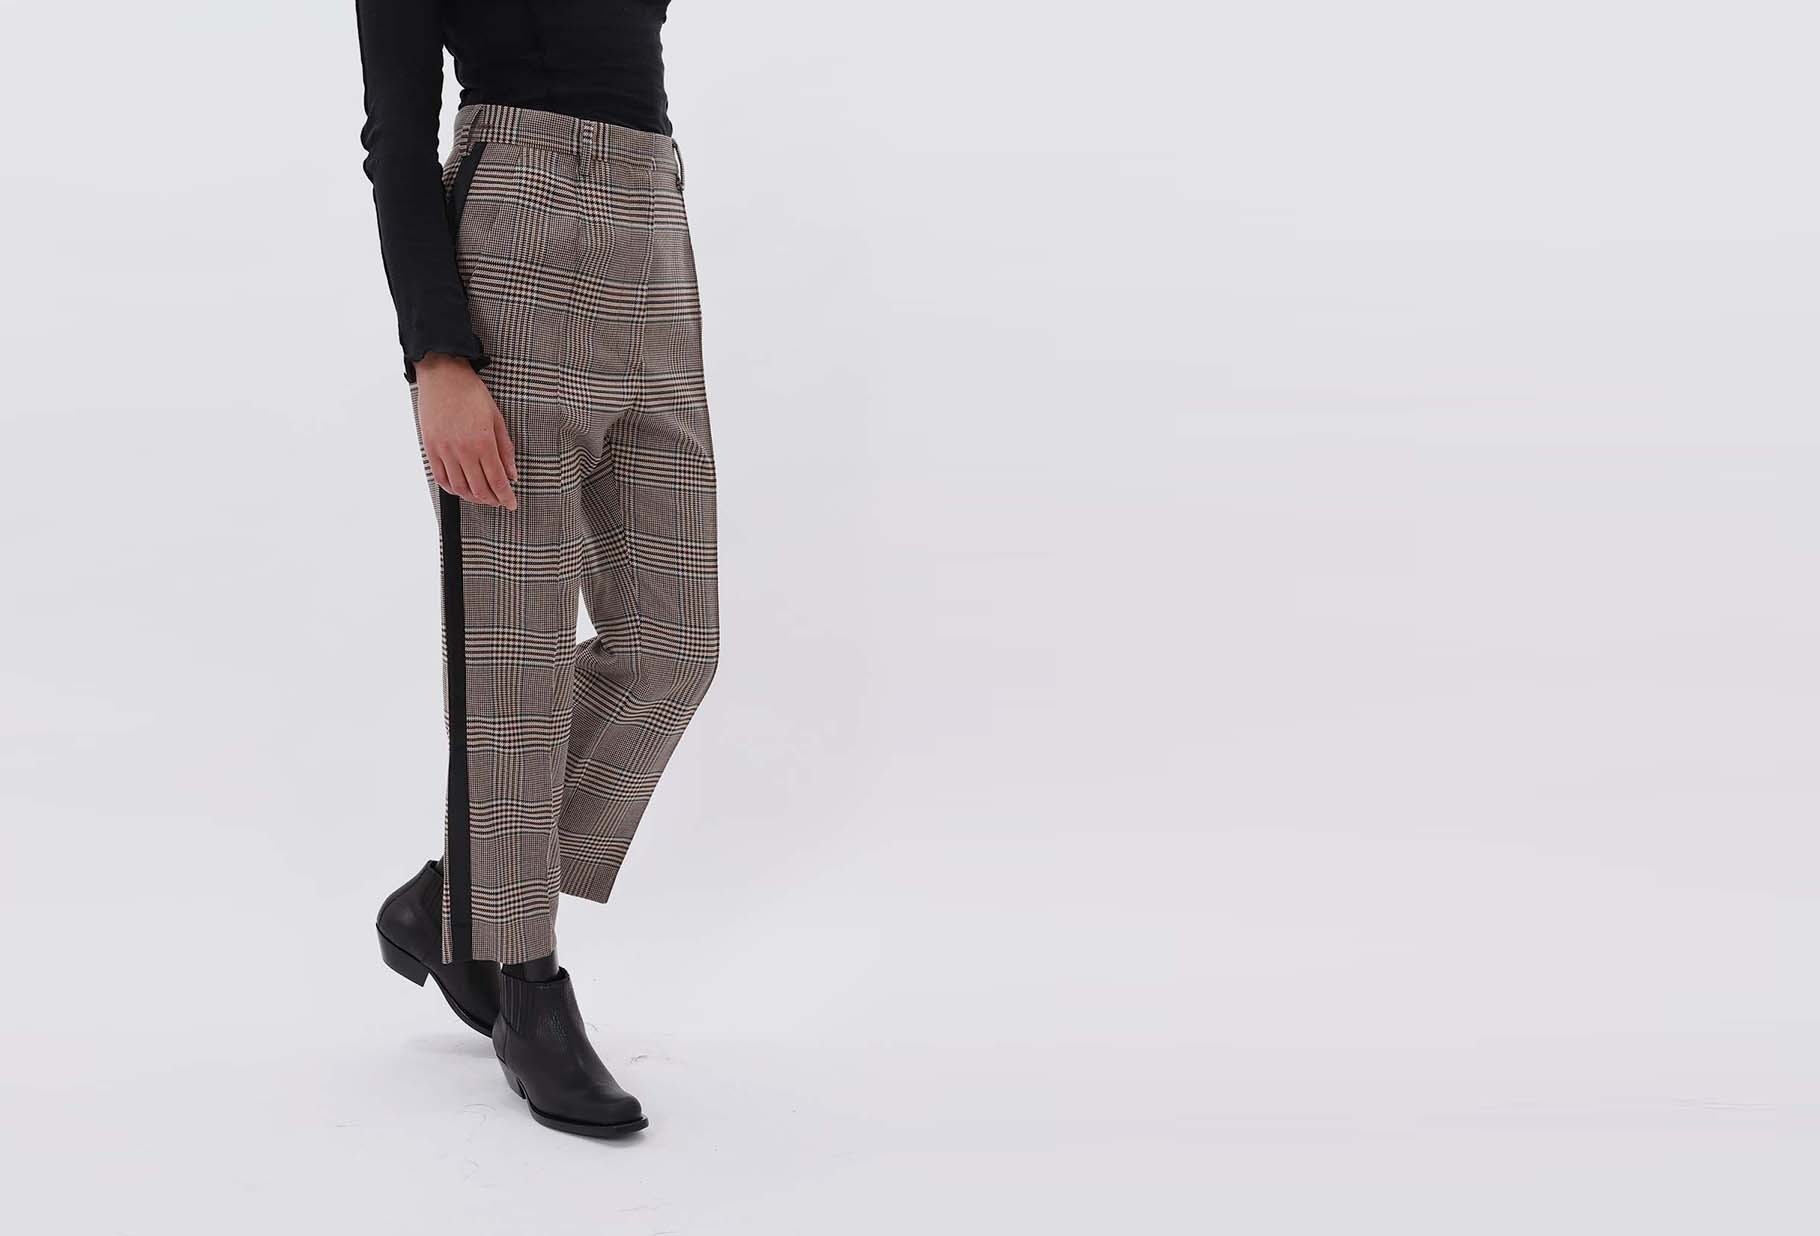 MM6 MAISON MARGIELA FOR WOMAN / Belted check trousers Beige